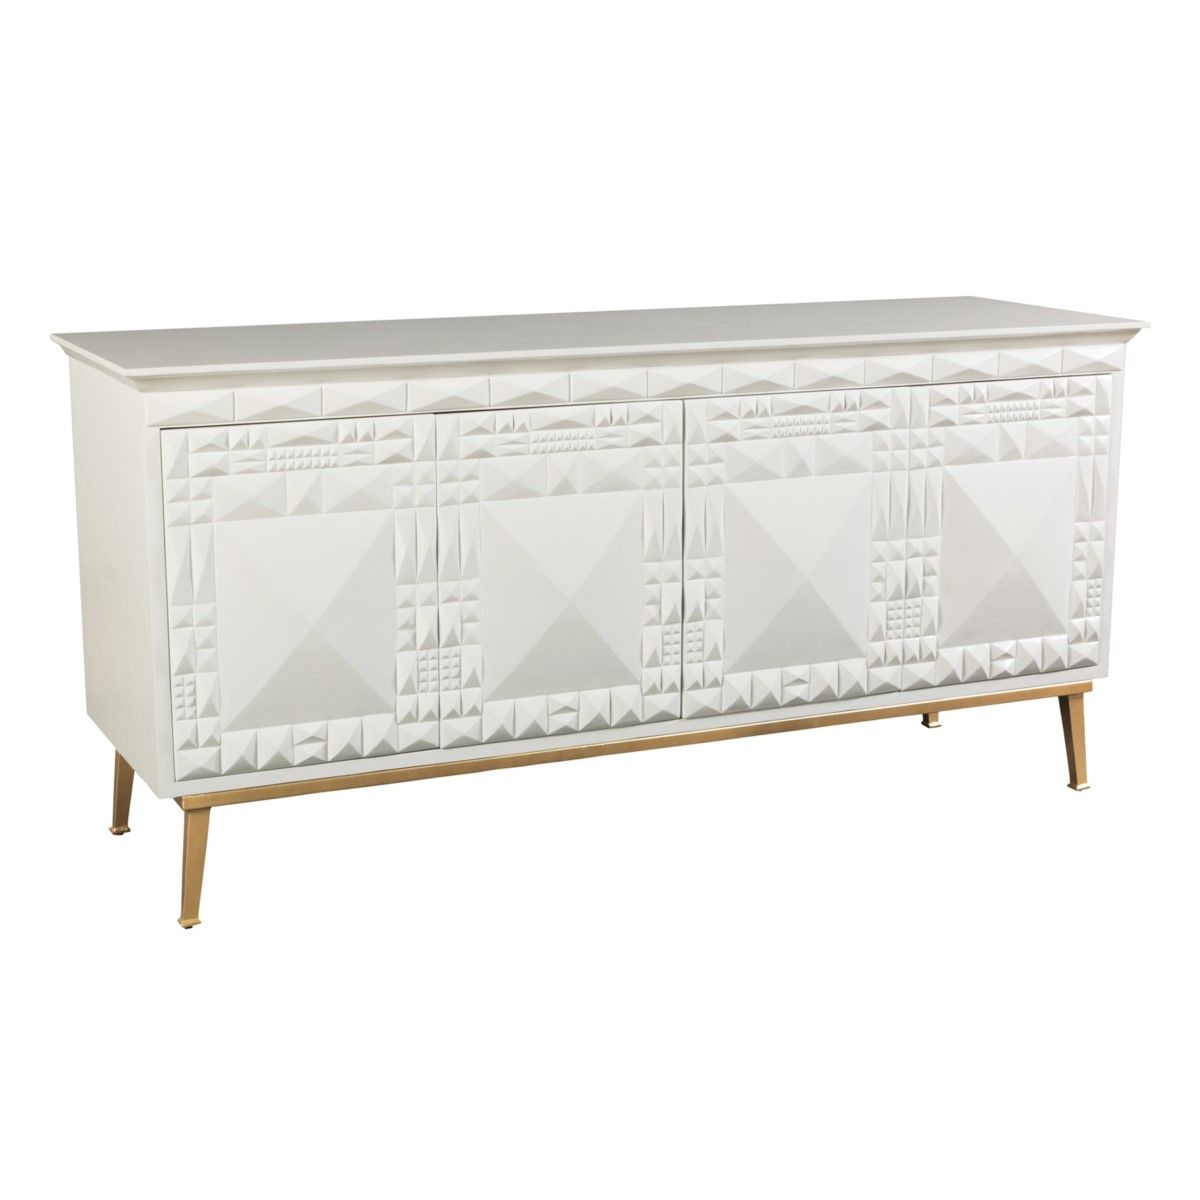 Furniture Storage Sydney Sydney Mod Pyramids Credenza White Storage Shelving